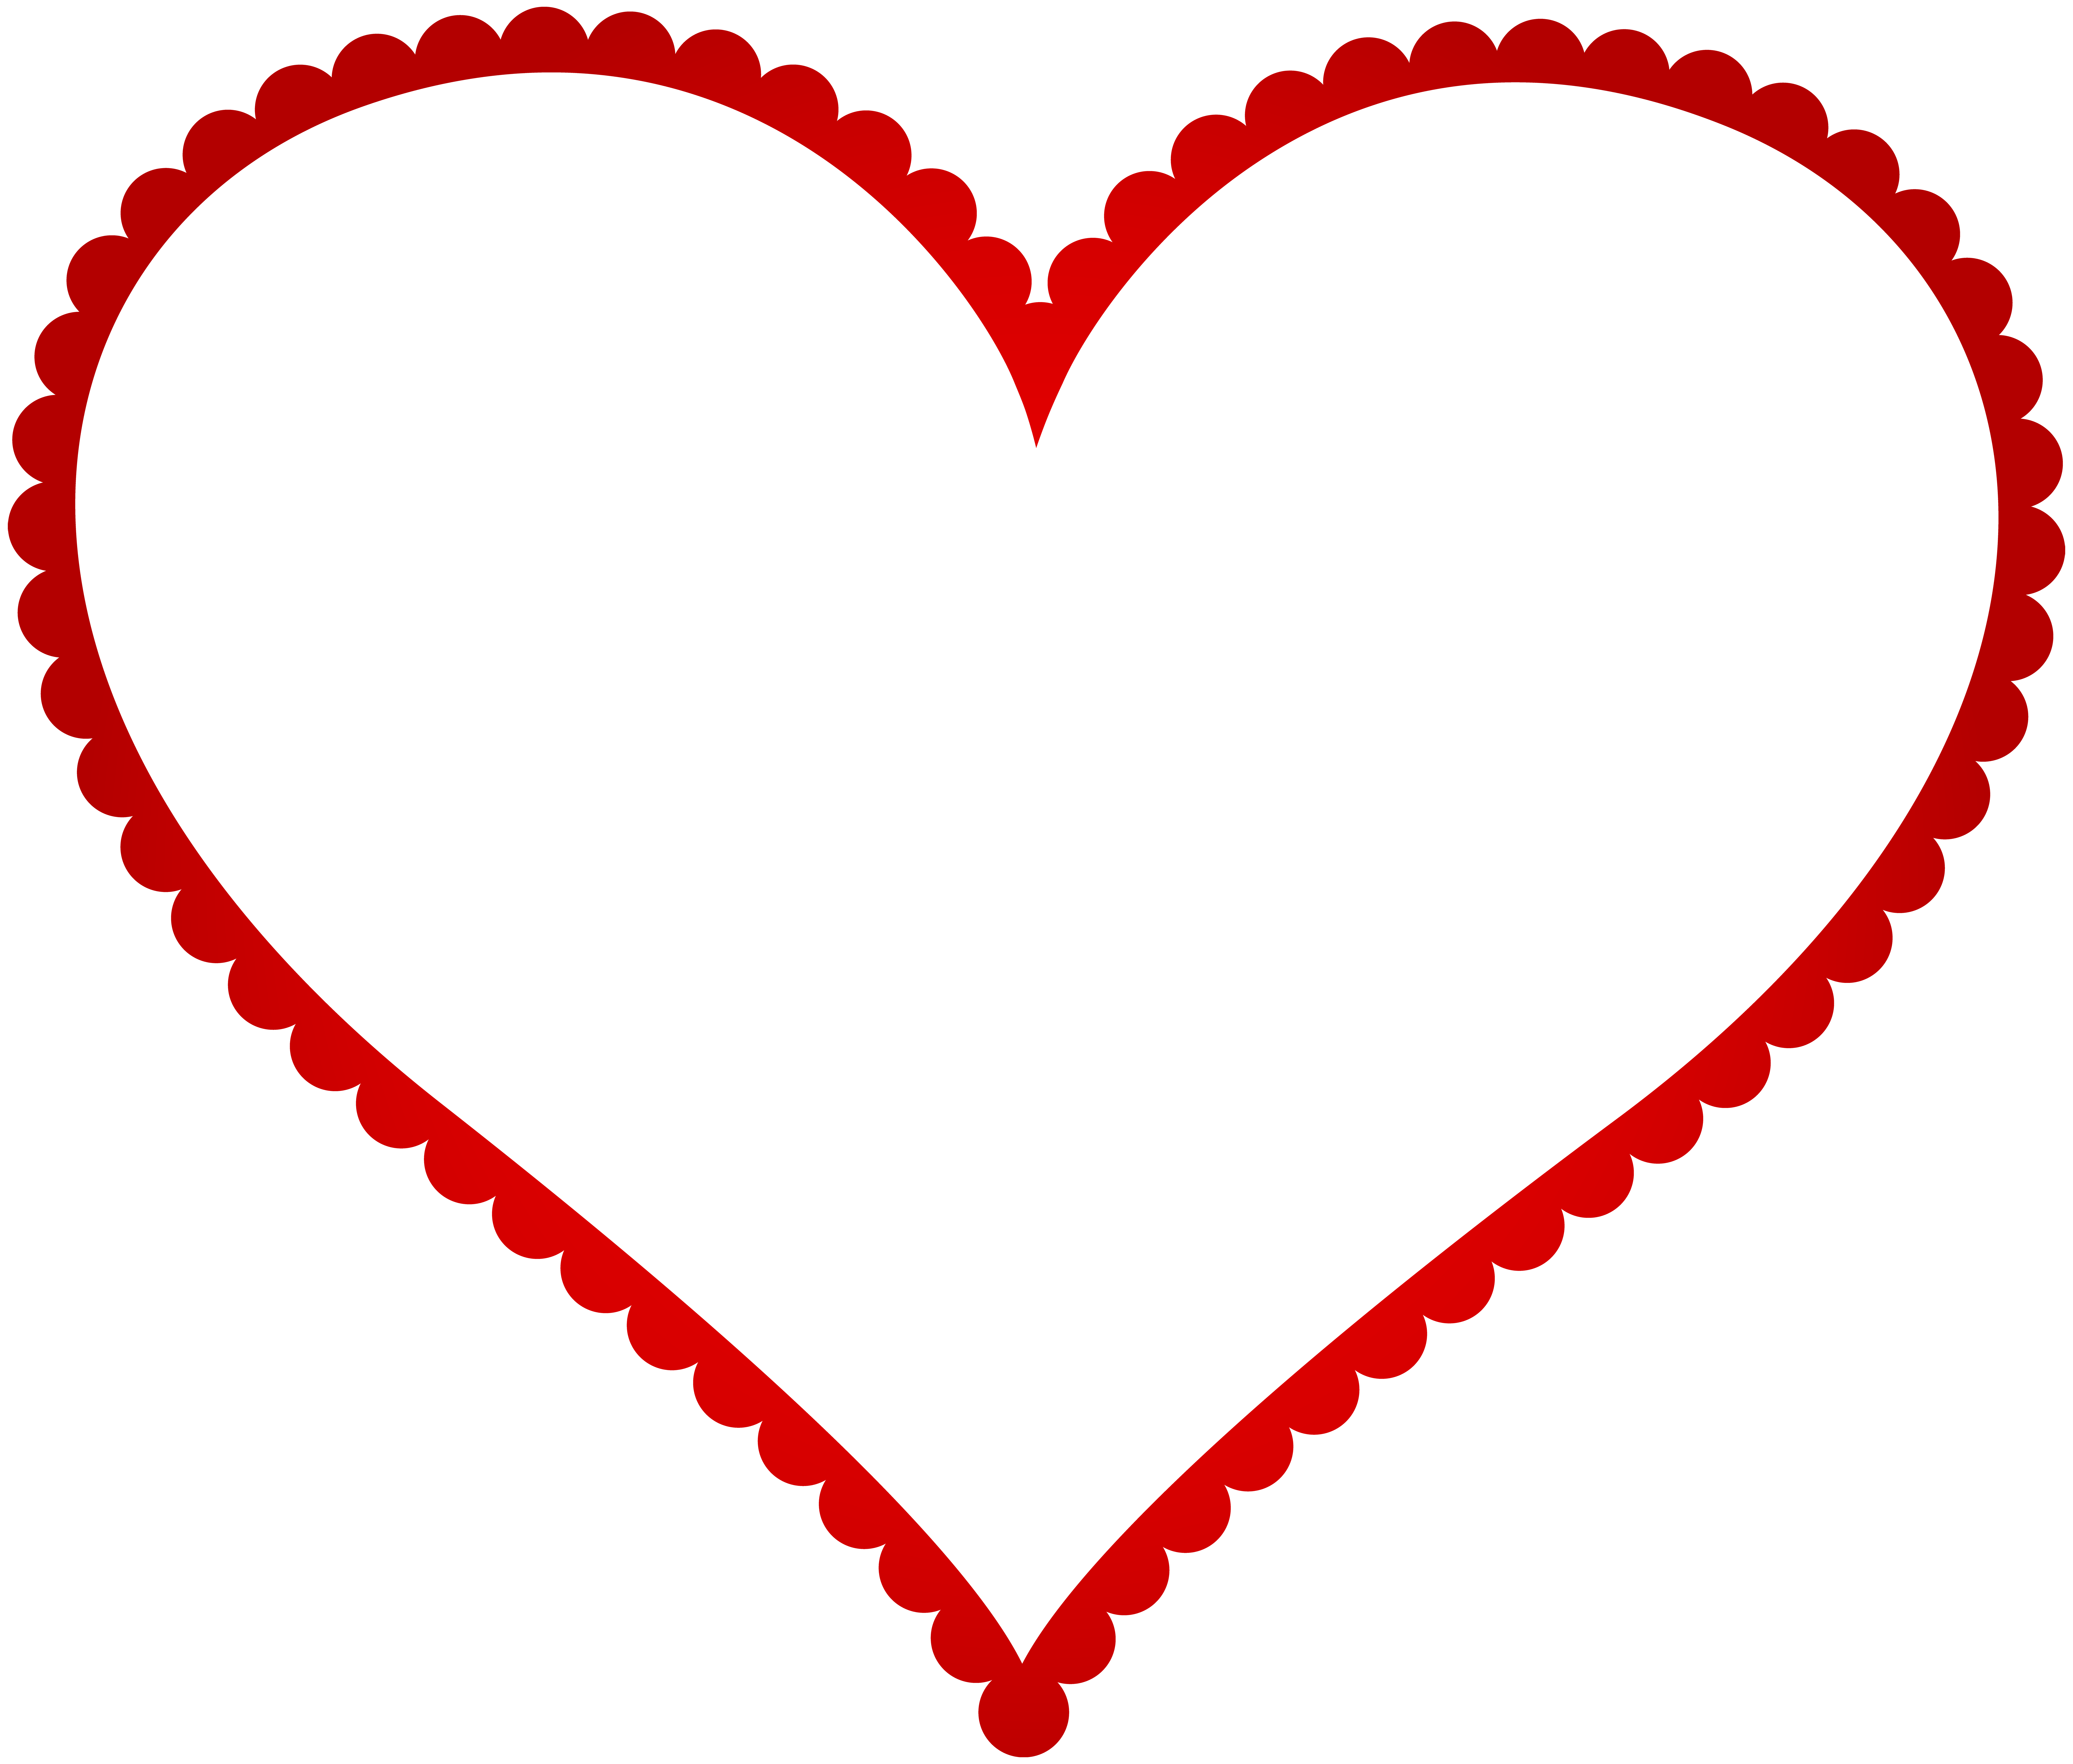 Clipart heart frame image freeuse stock Red Heart Border Frame Transparent PNG Clip Art | Gallery ... image freeuse stock